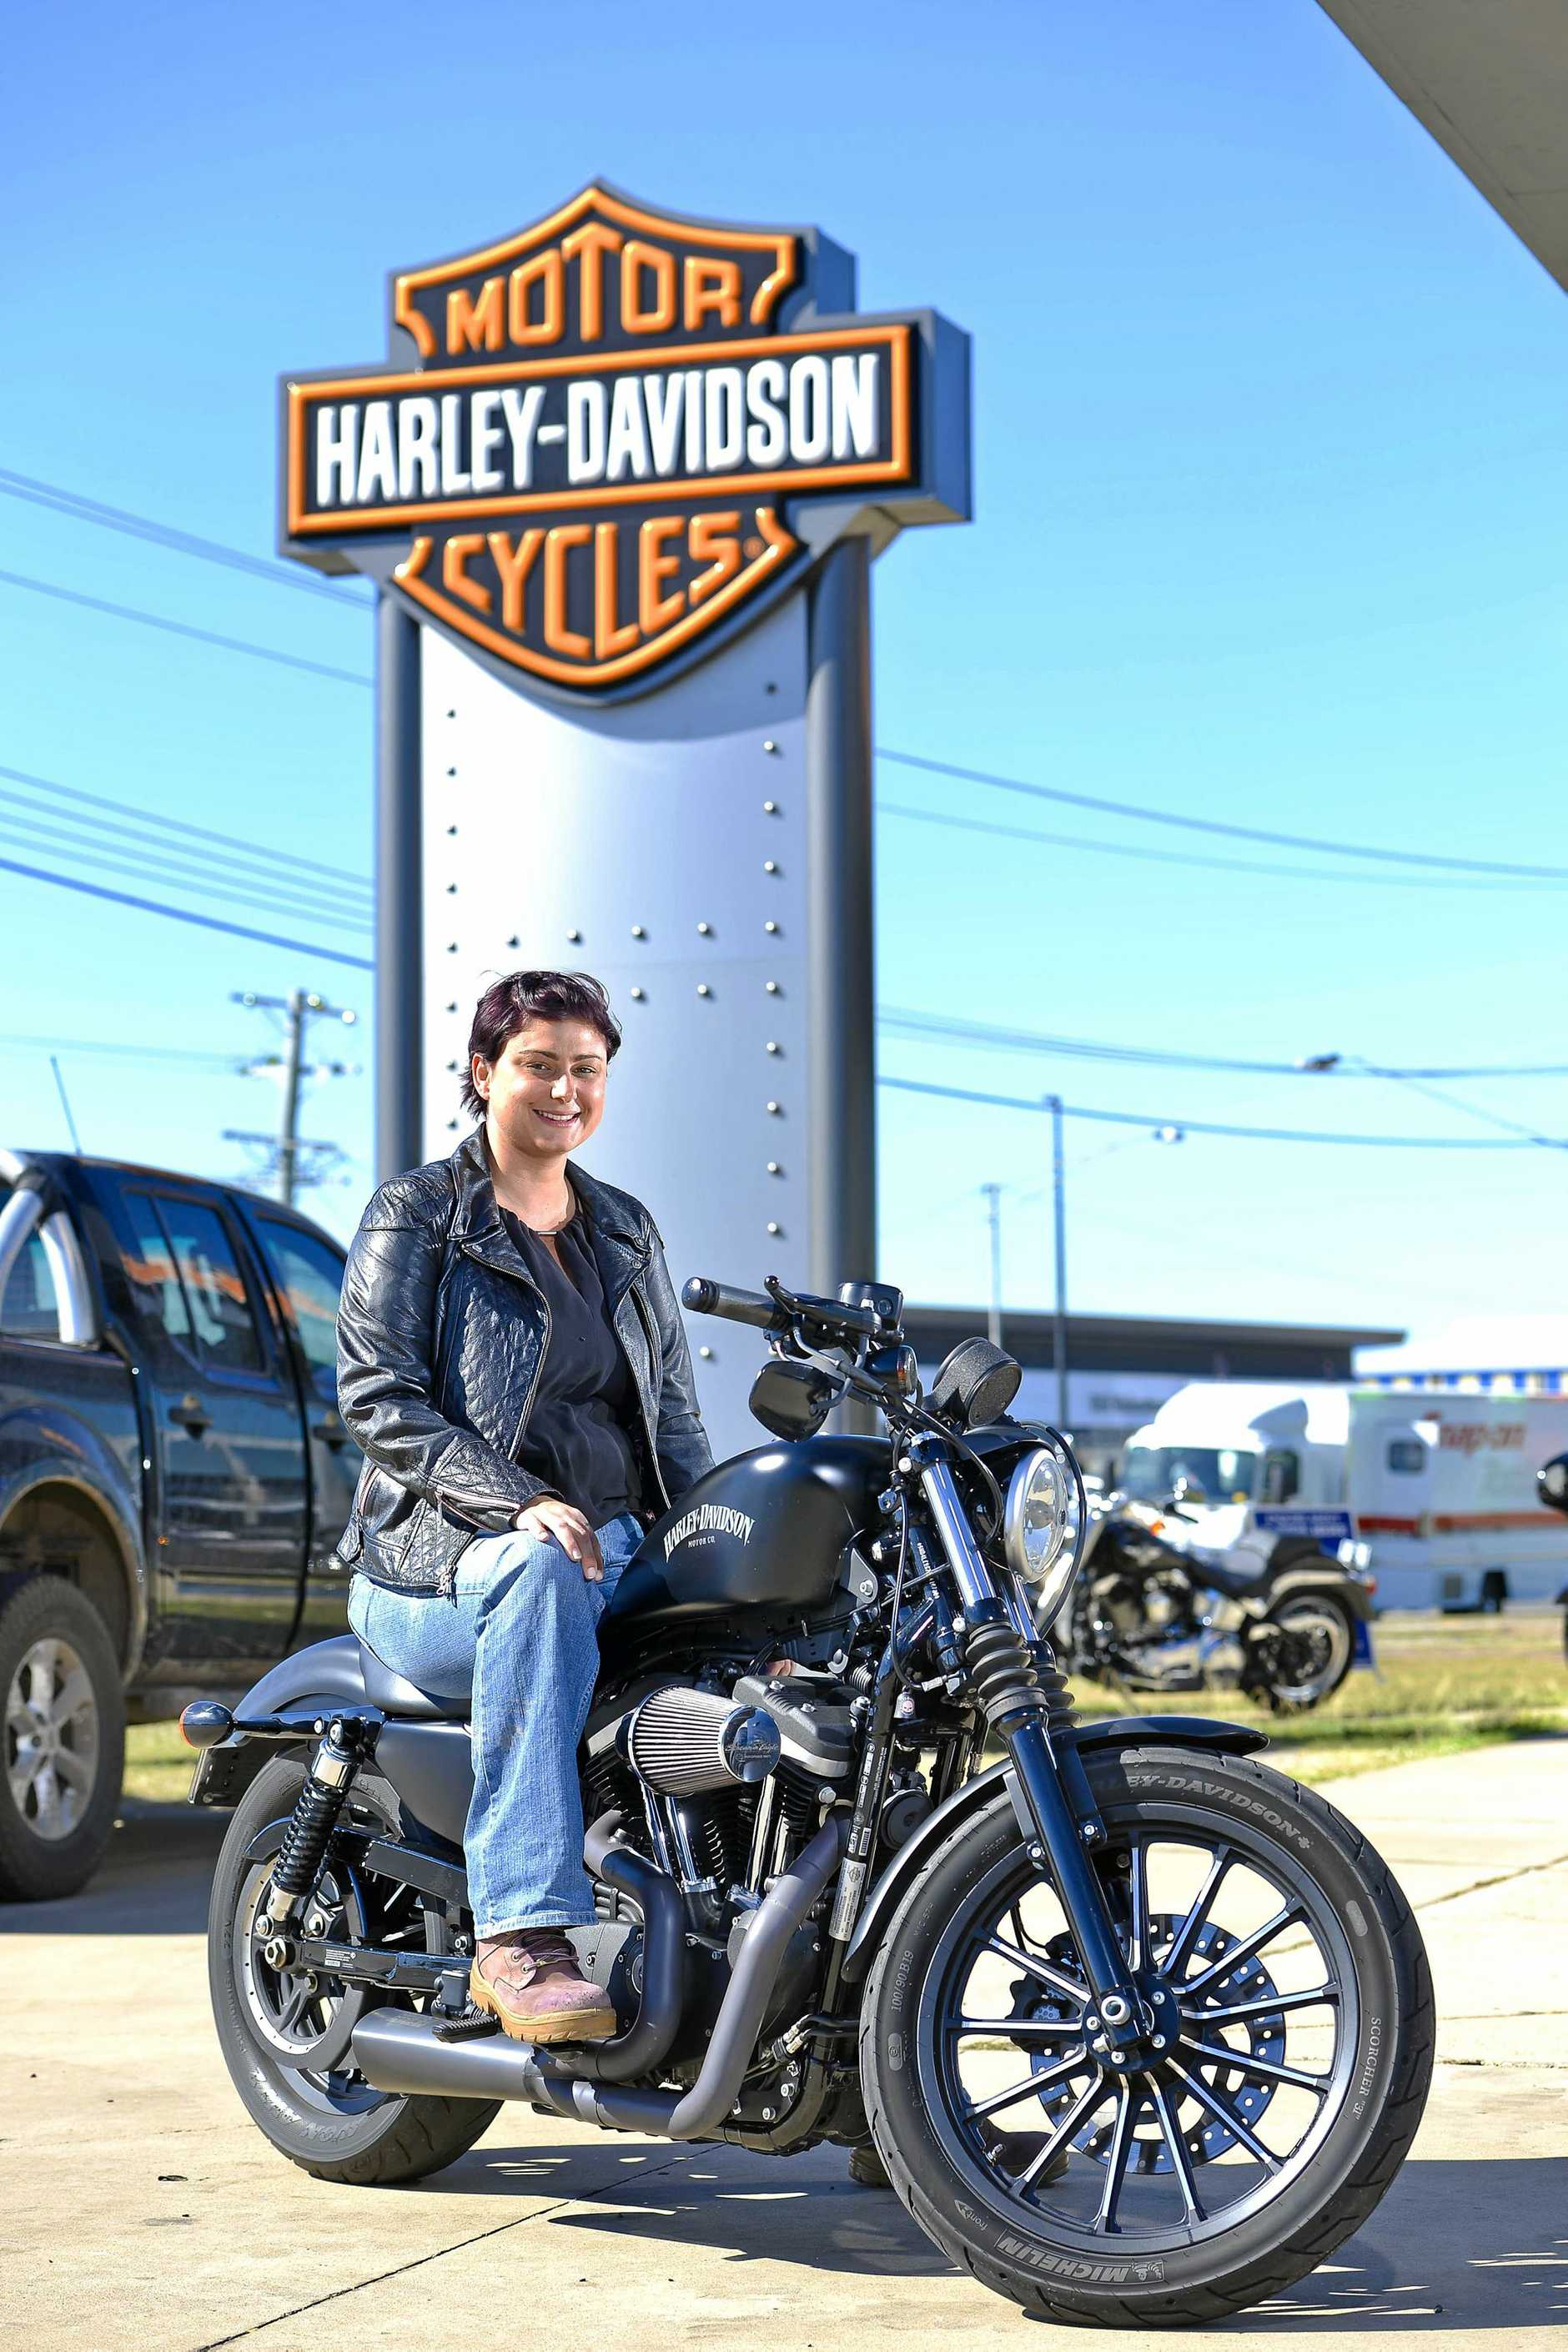 Shannon Josefski on her modified Harley Davidson 883 Iron (1200cc).